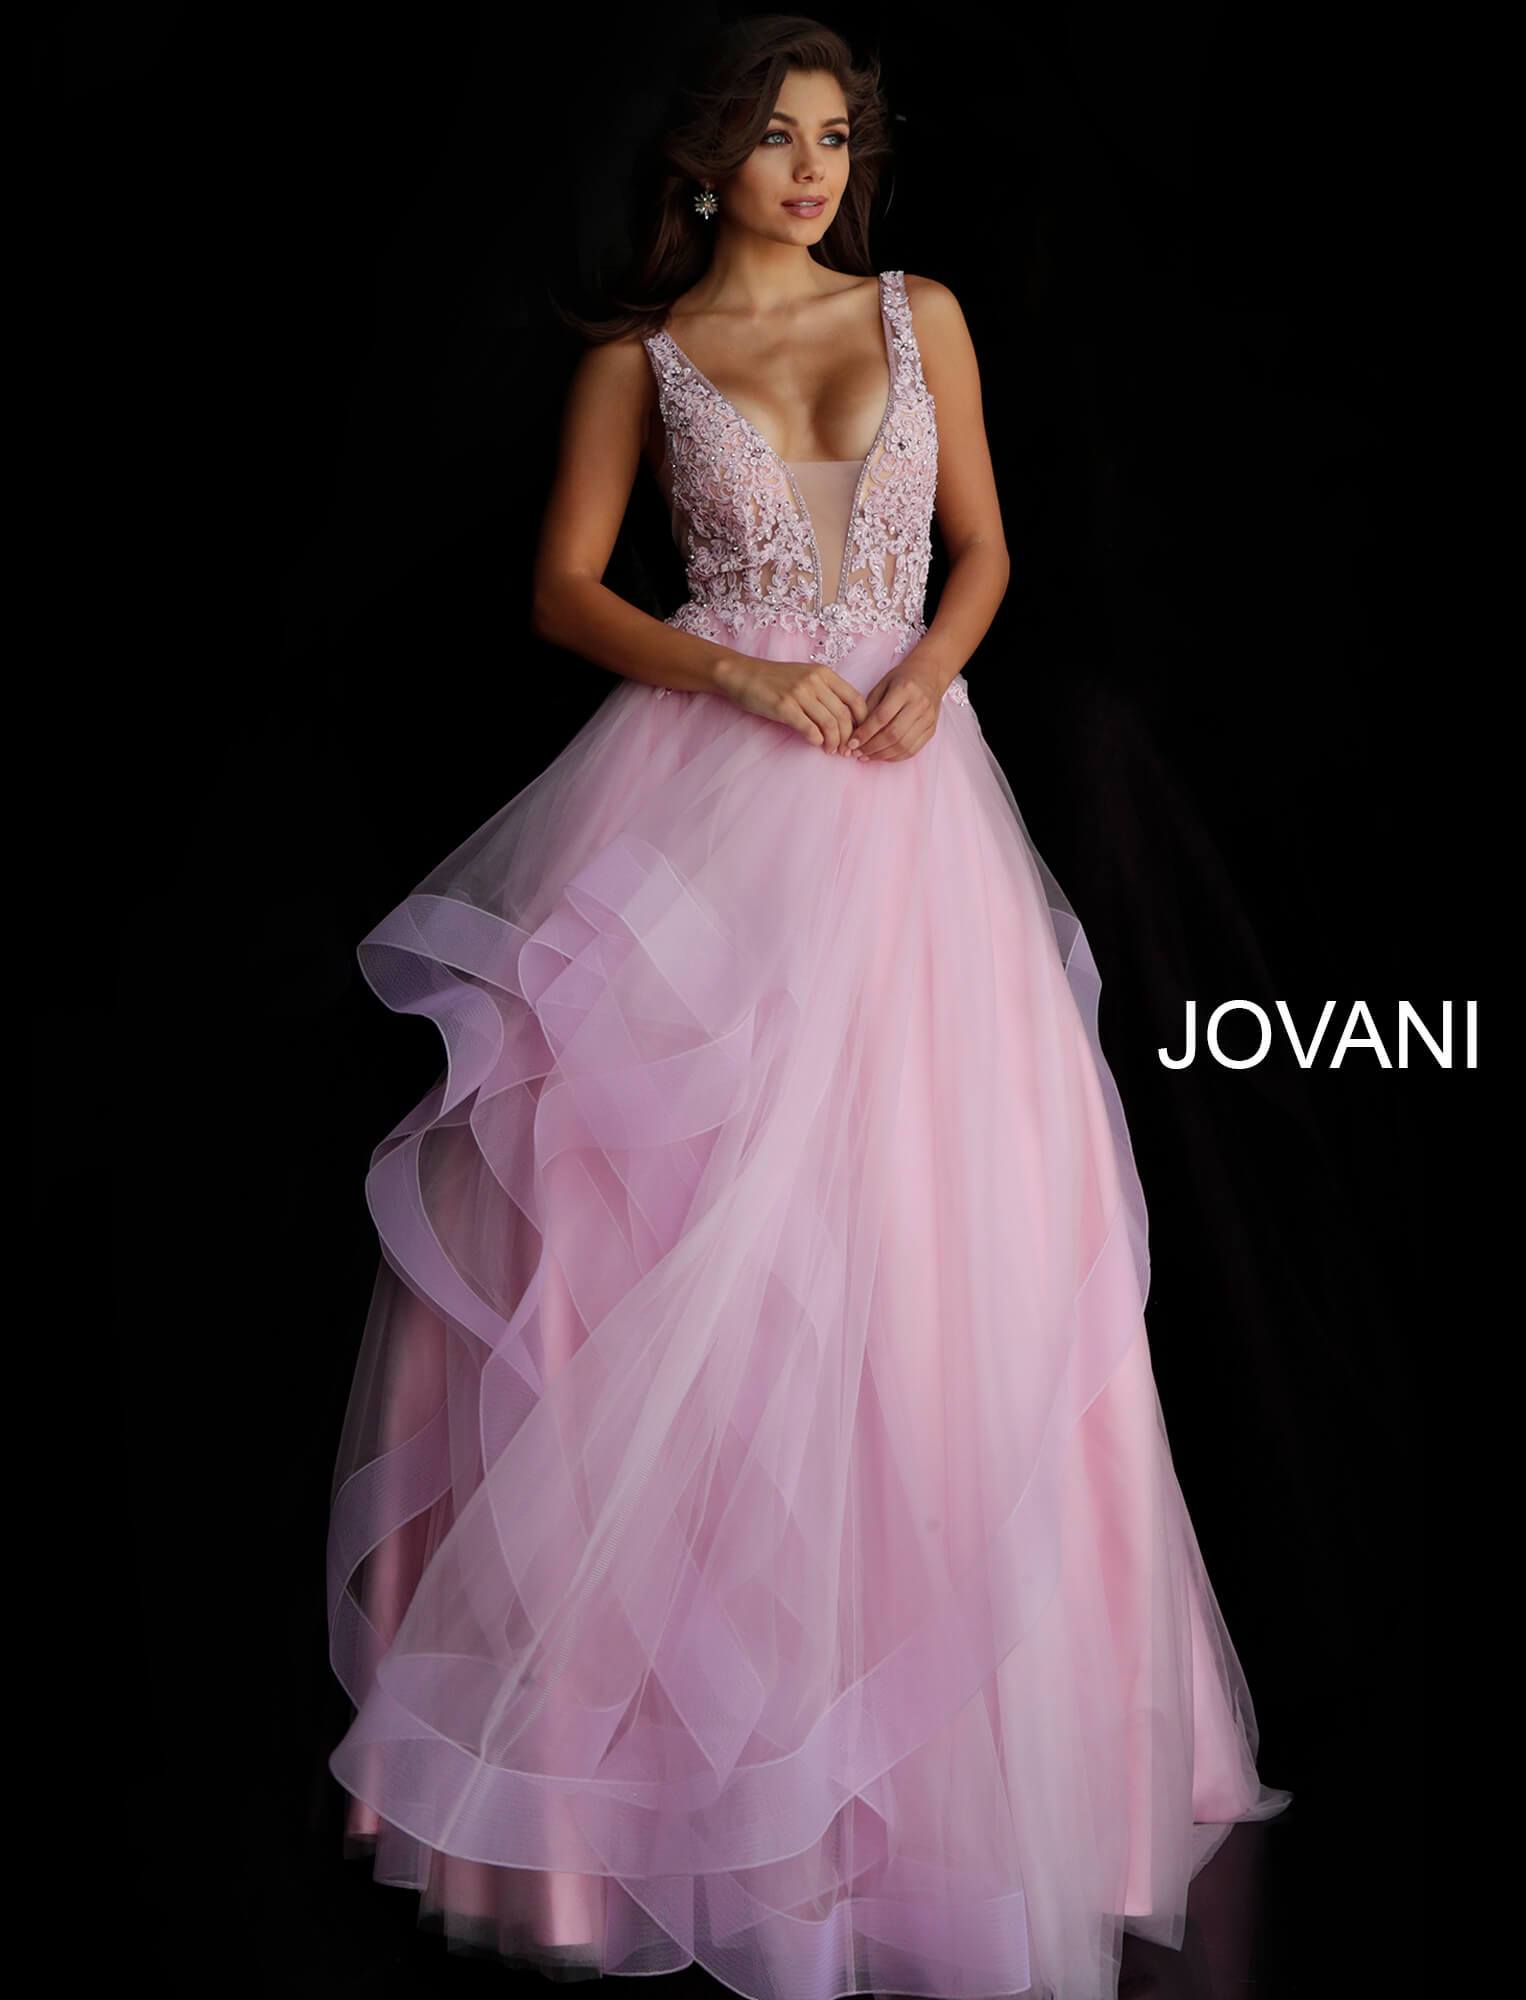 Jovani Pink  Sleeveless Prom Ballgown - Gissings Boutique